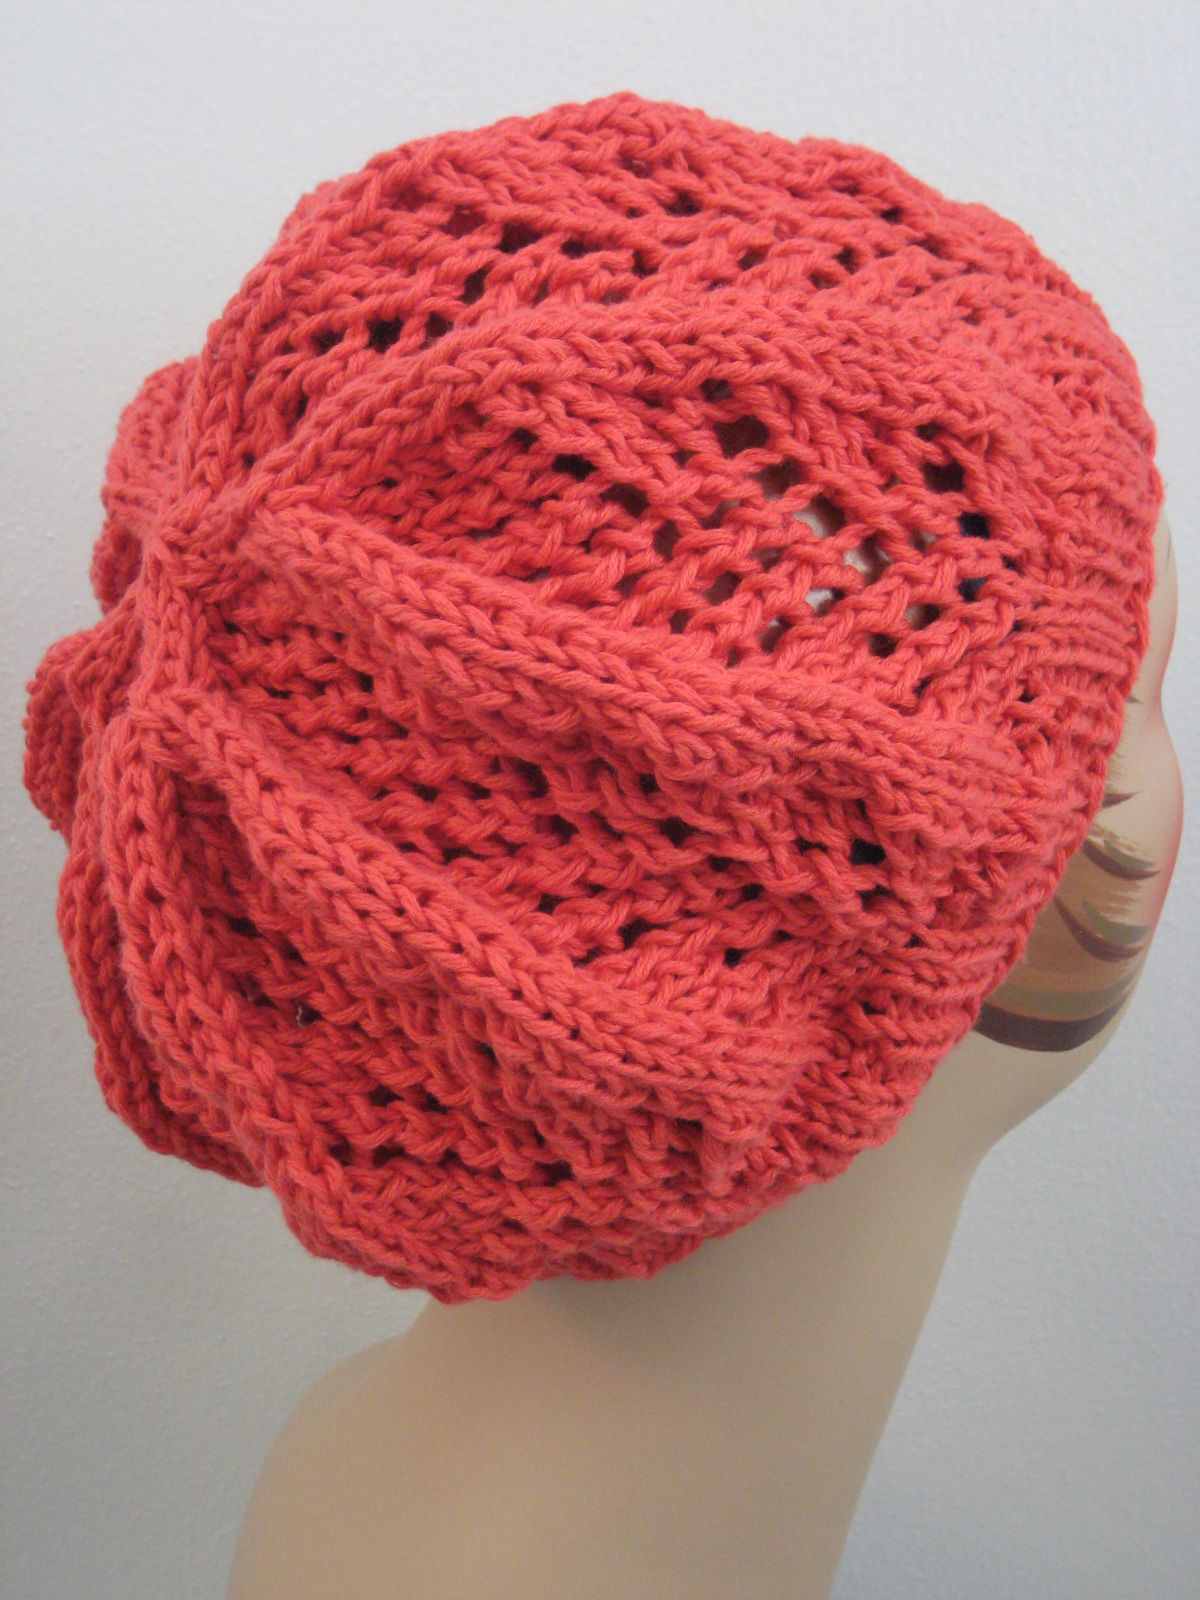 Free Knitting Pattern - Hats  Fan Lace Hat  b22a488df65